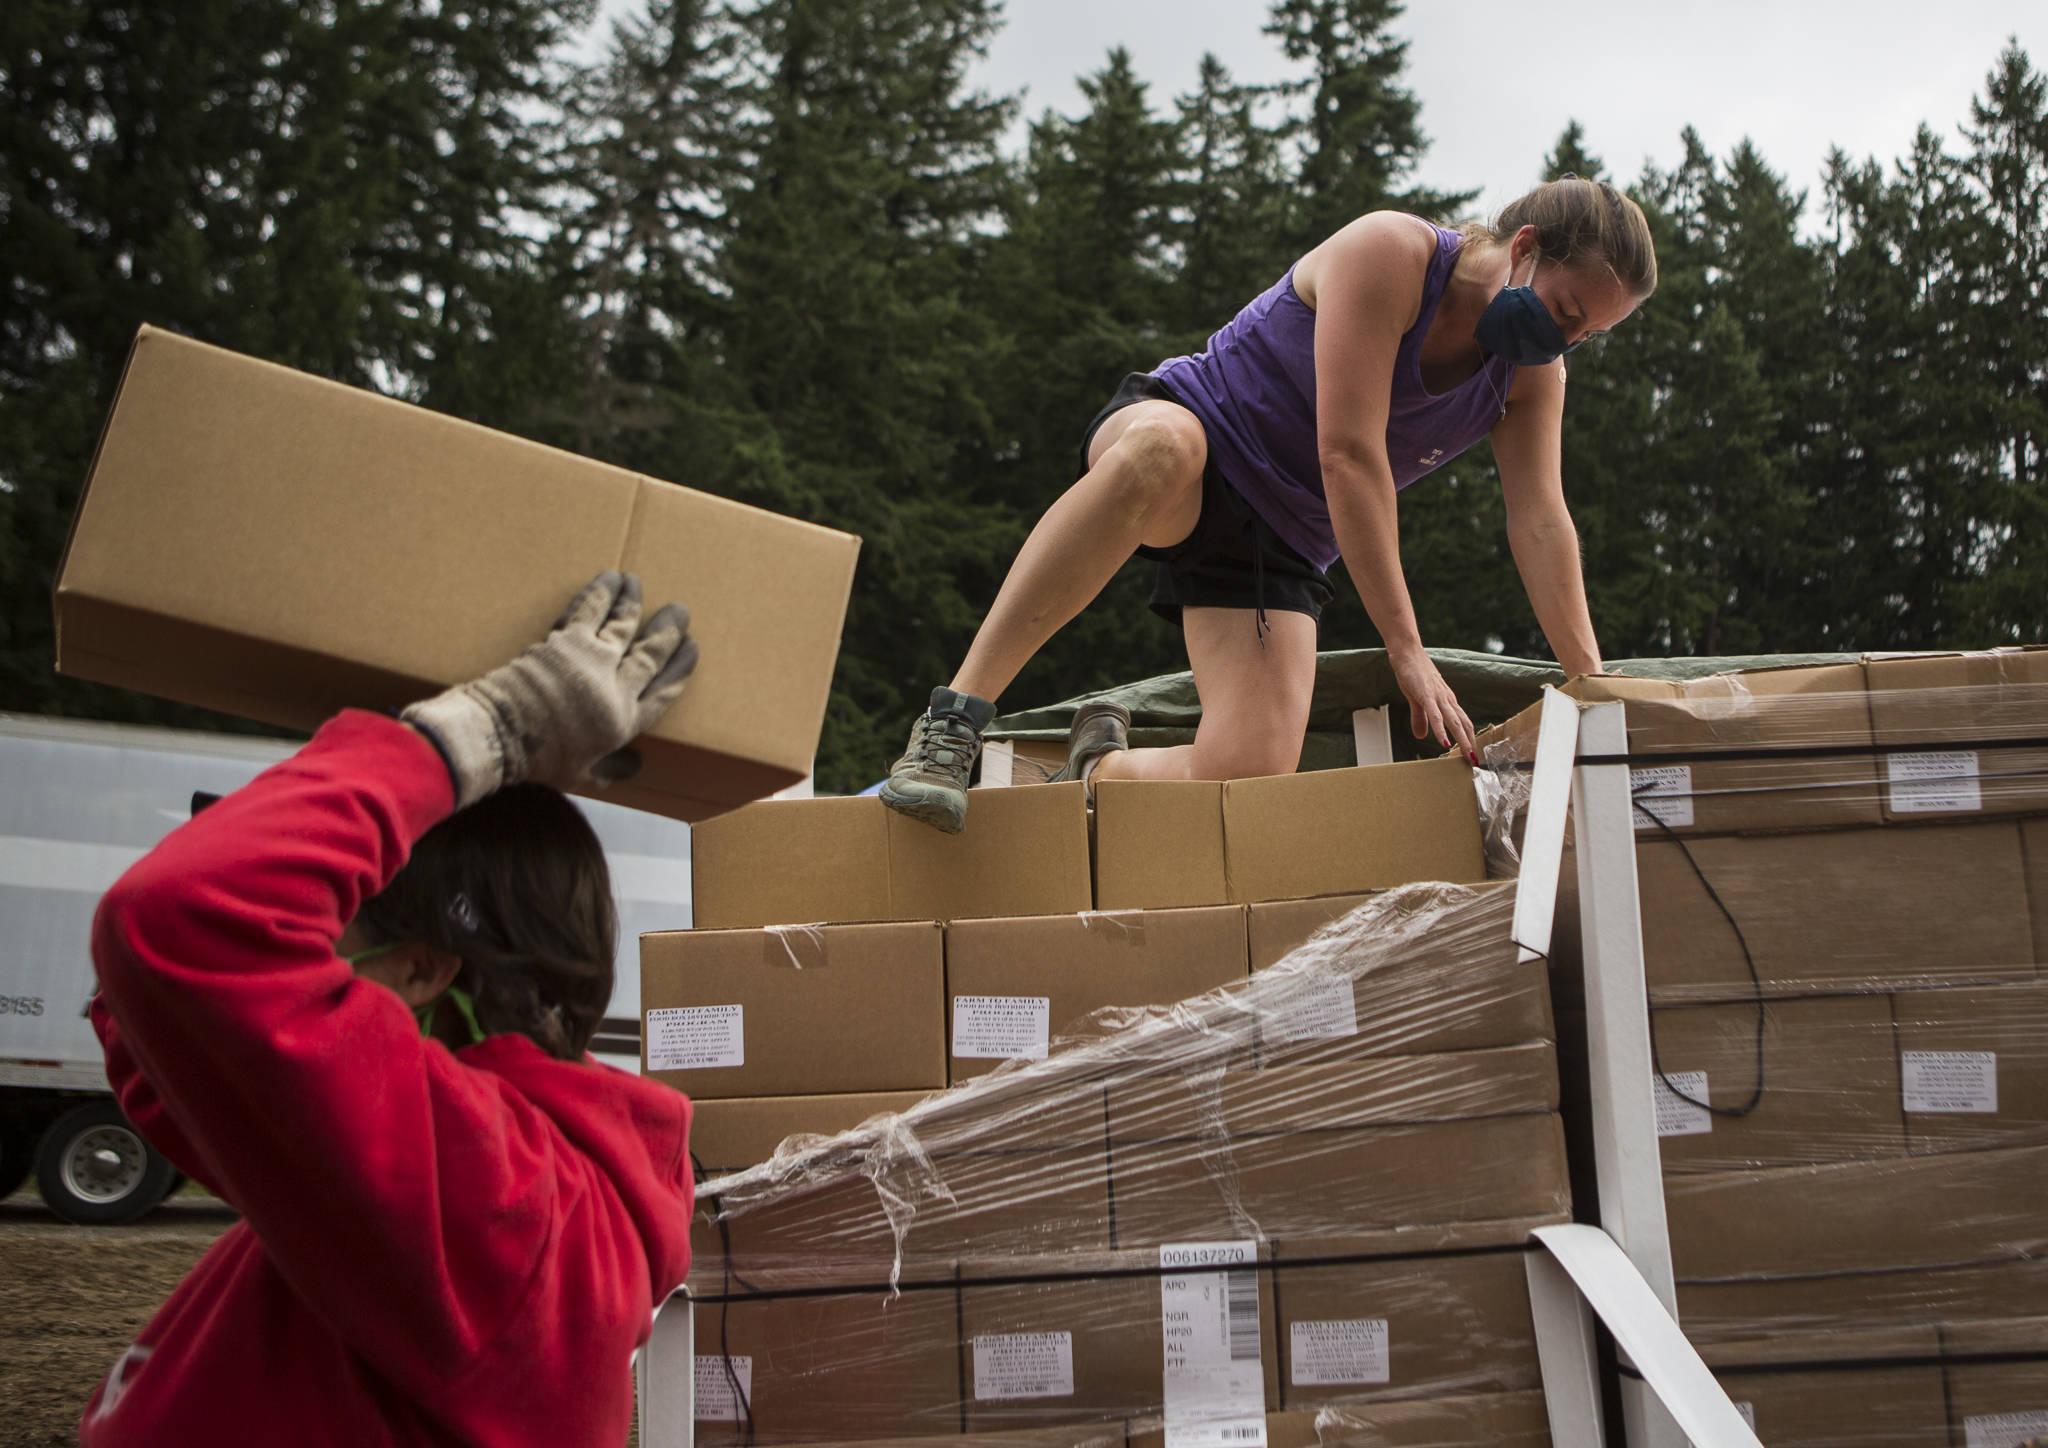 Alysha Herich (right) hands boxes of food to Vickie Cariello (left) to load into cars at Farmer Frog on July 24 in Woodinville. (Olivia Vanni / The Herald)